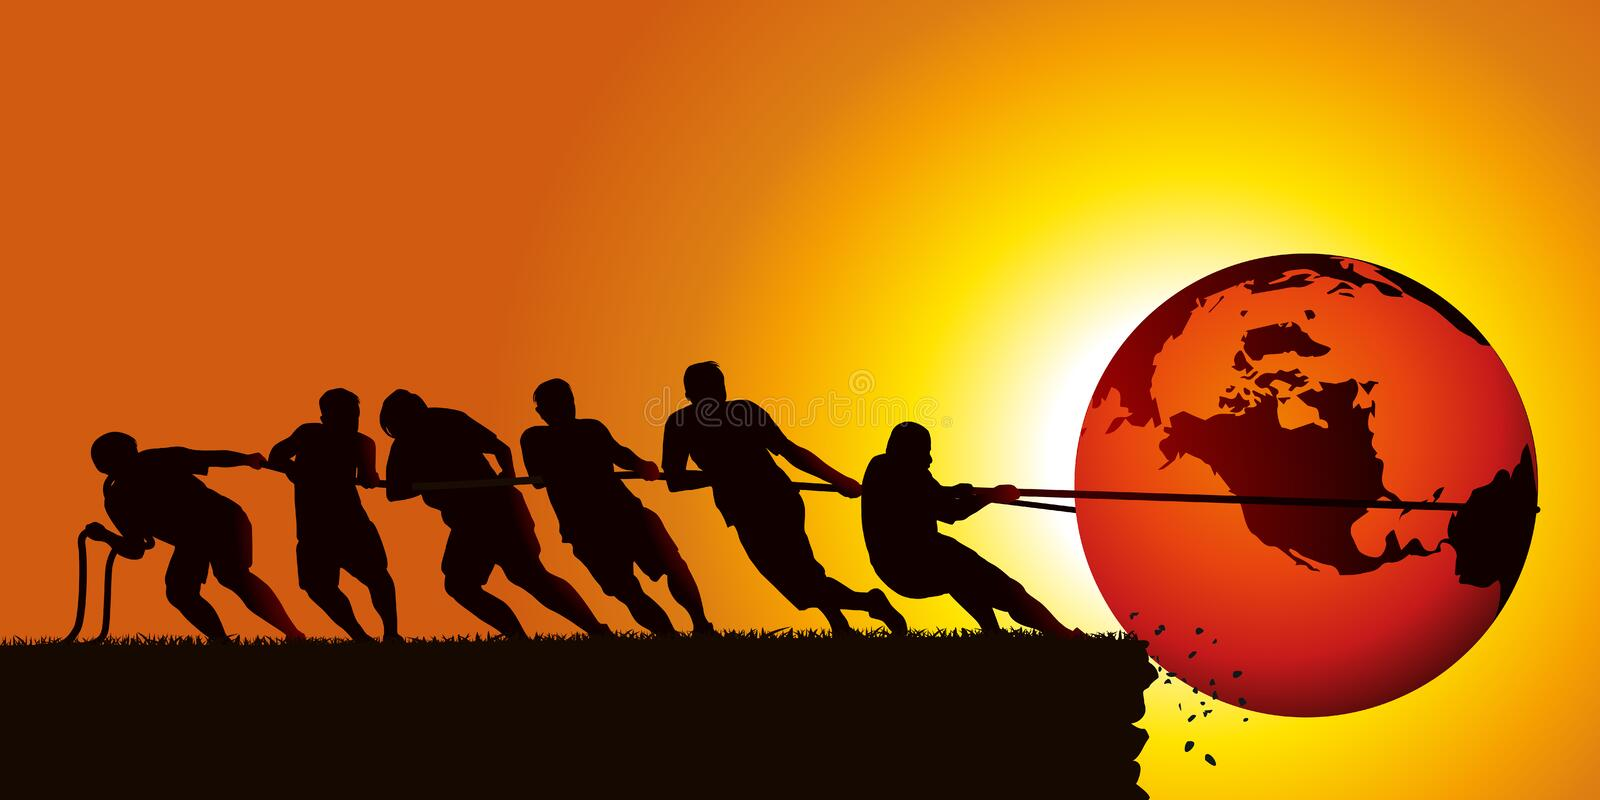 People pull rope to prevent the earth from falling into a pit. Conceptual image of a group trying to hold the globe with a rope to prevent it from falling into stock illustration